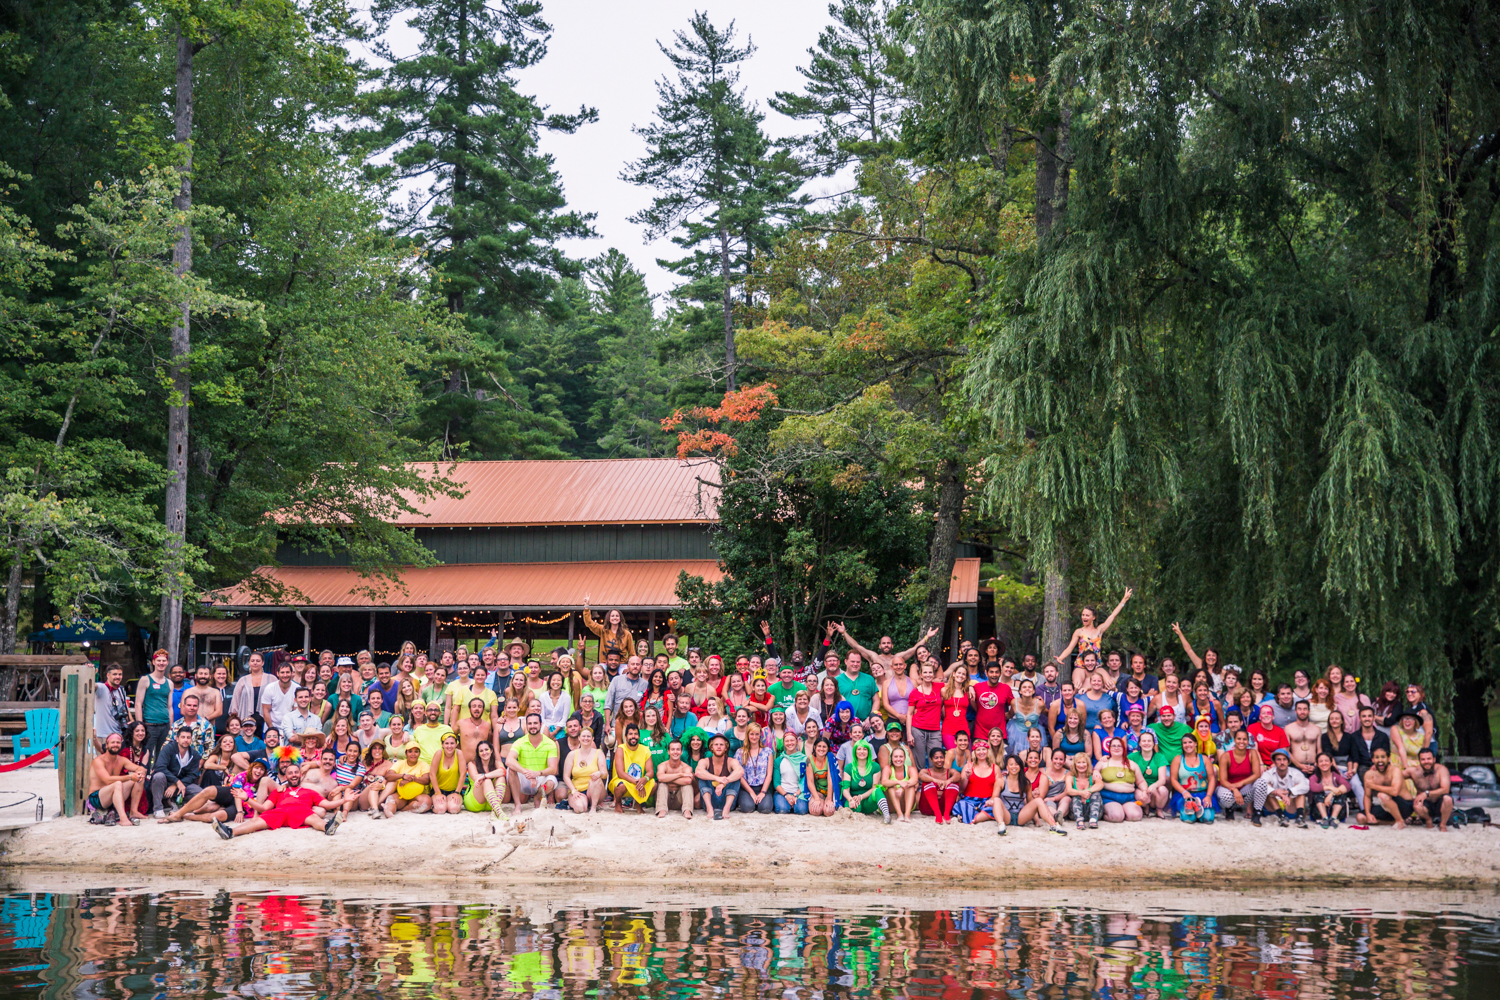 Large group picture of colorfully-dressed campers gathered in front of a lake